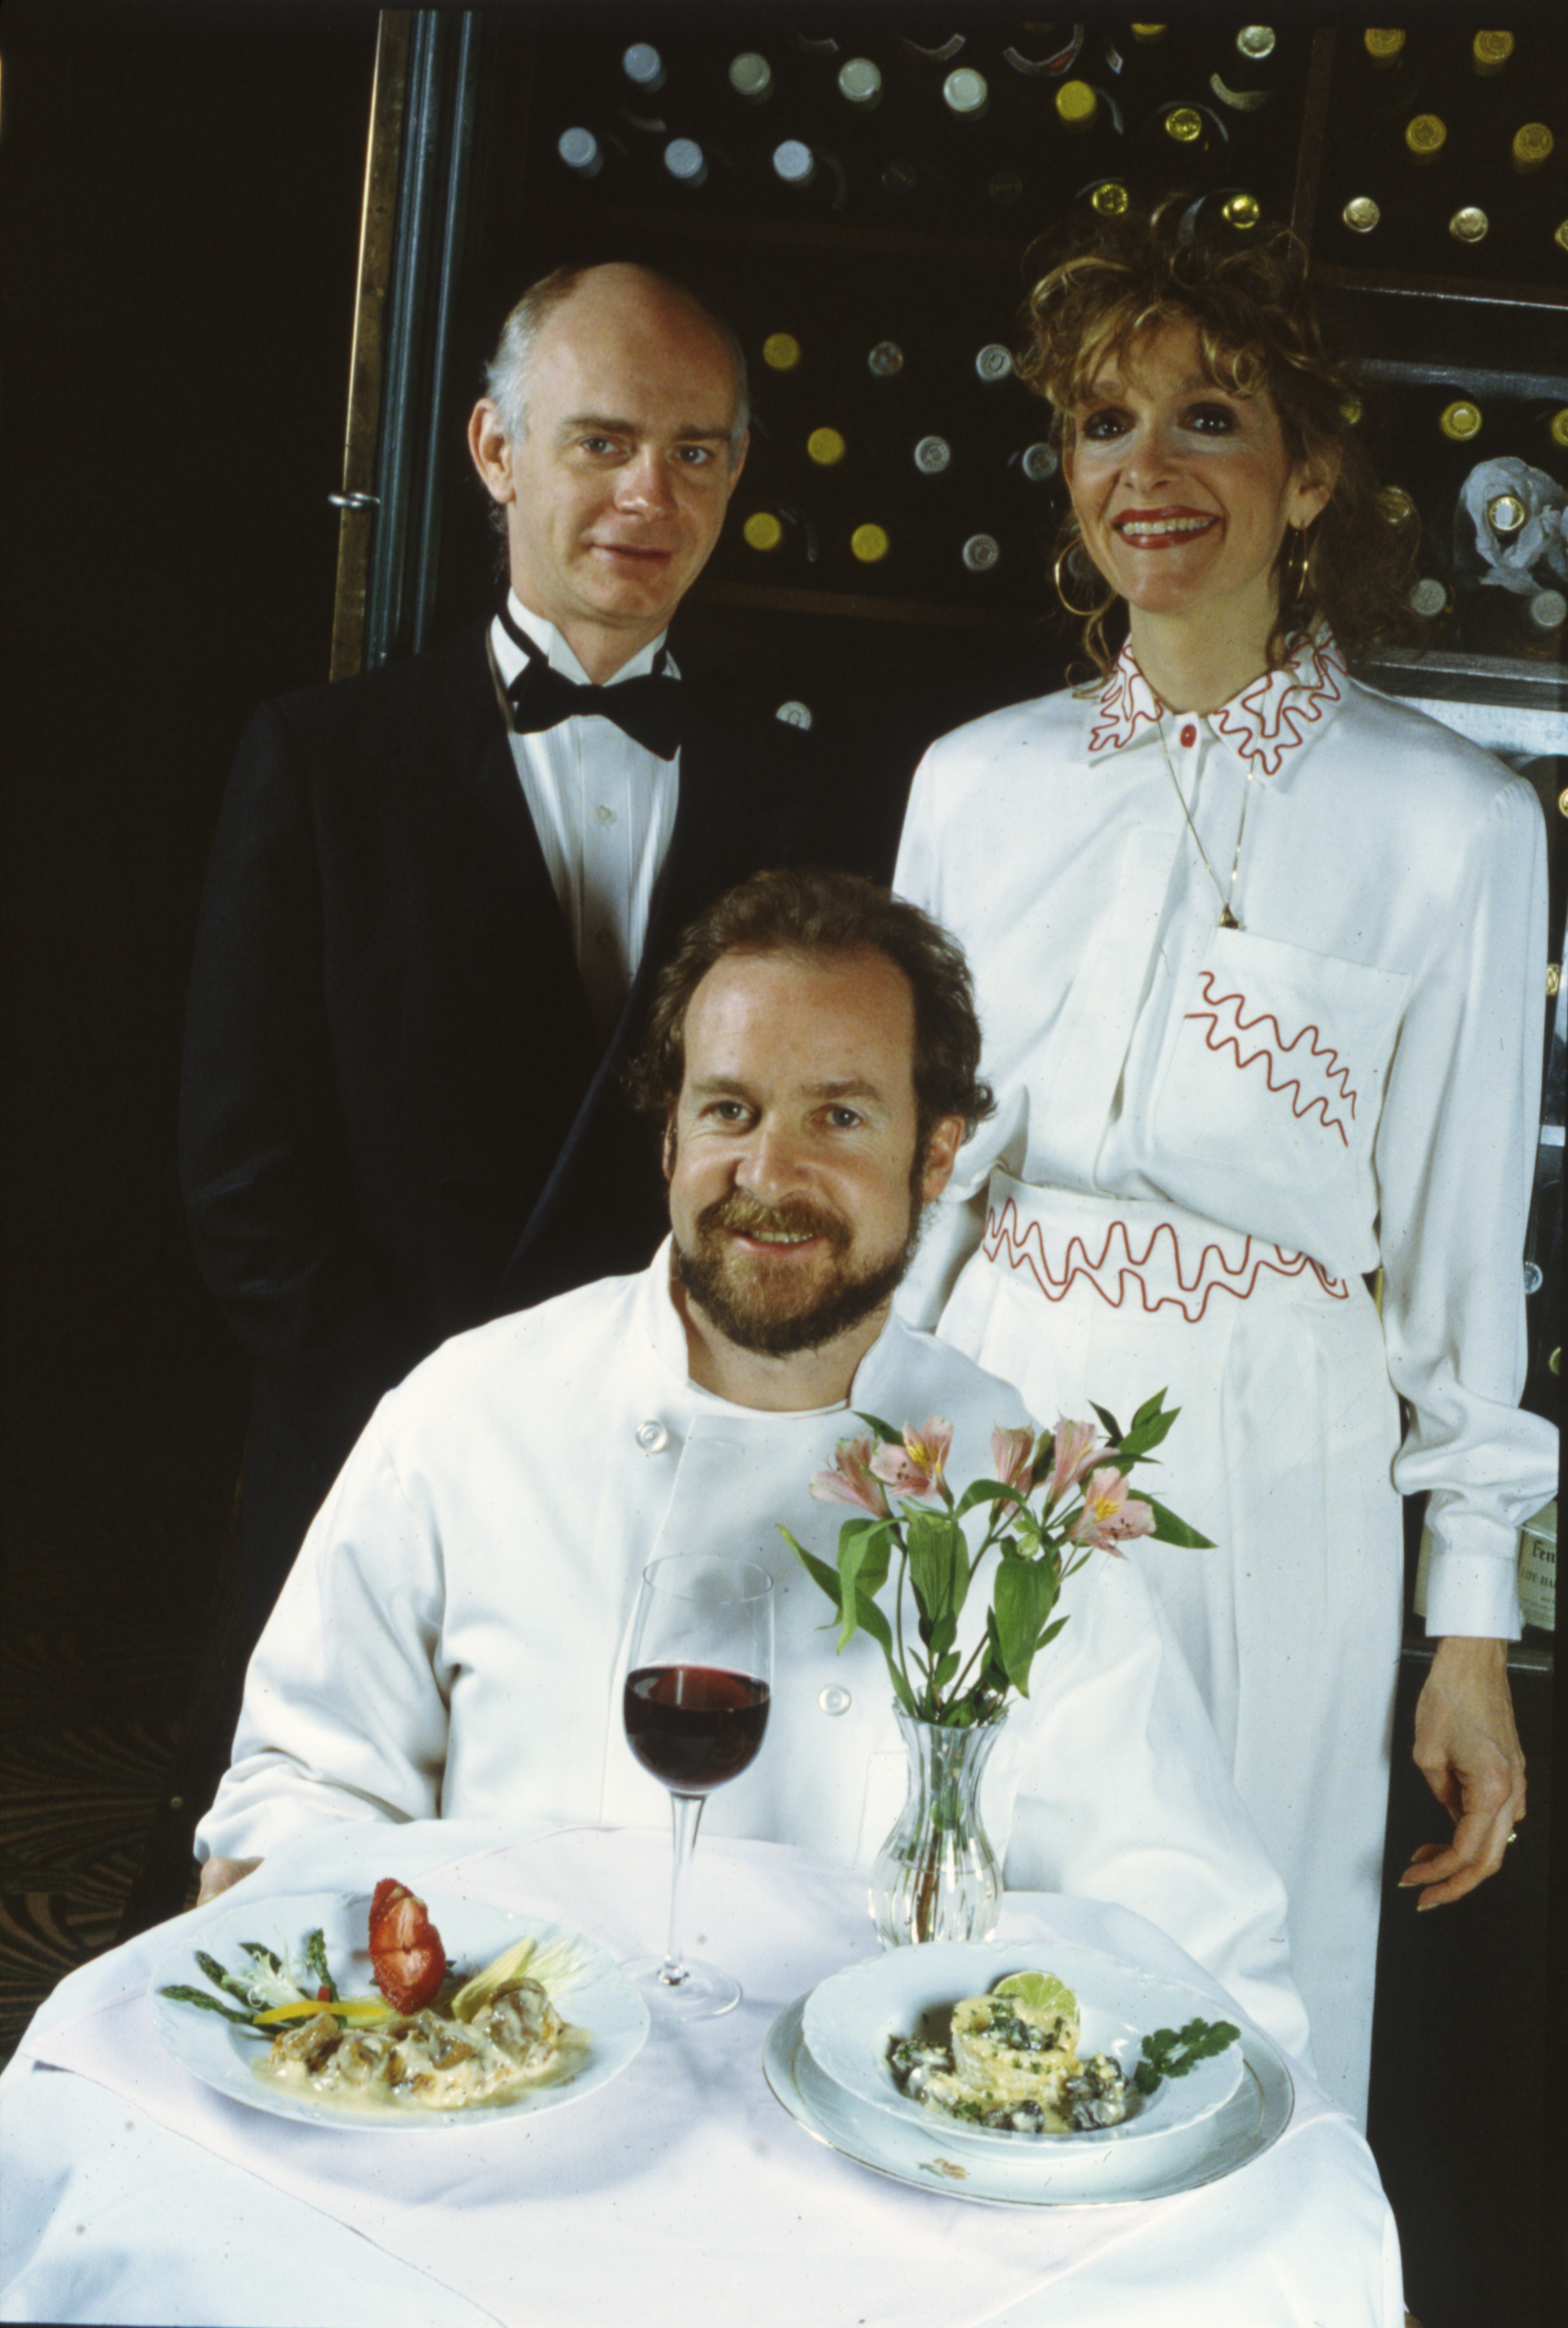 Escoffier Owners Maureen and Tony Pereault and Maitre d' Terry McClymonds, February 1990 image